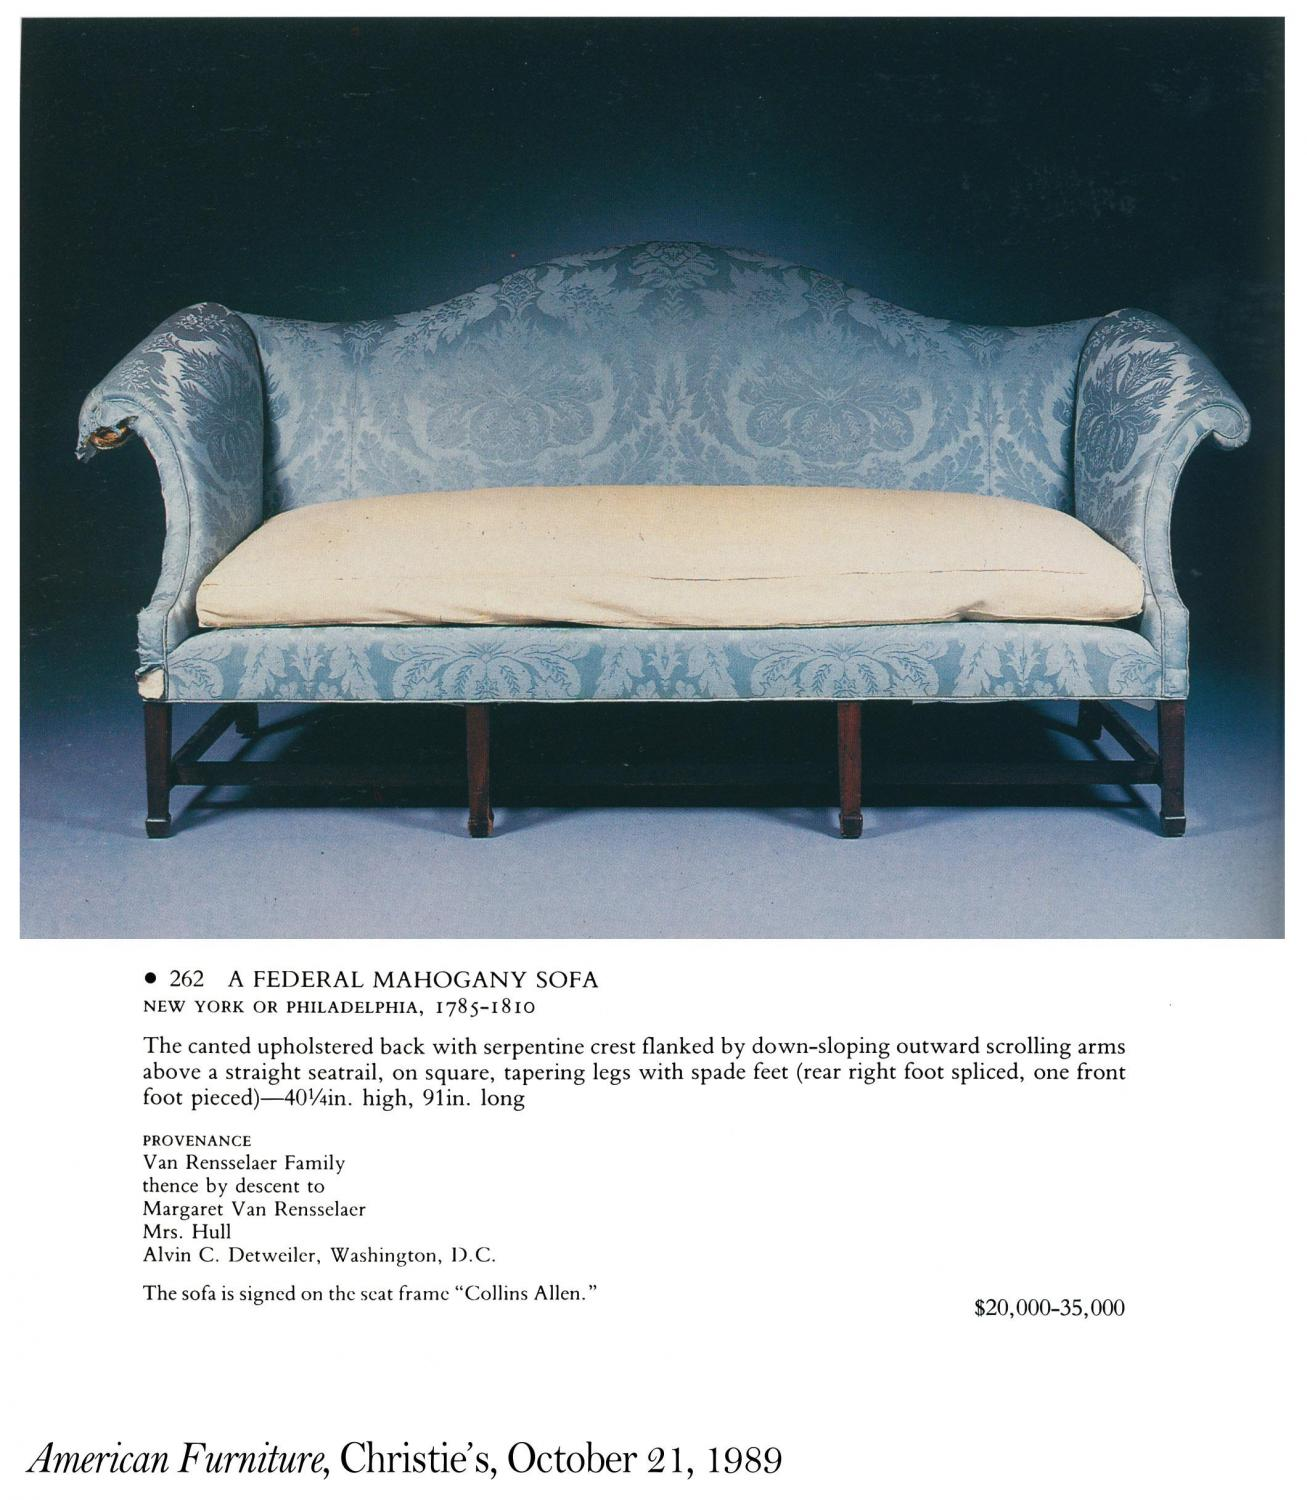 A Commodious Mahogany Hepplewhite Camelback Sofa With Serpentine Back And Seat With Spade Feet New York C 1800 Provenance From Samuel Kirkland D 1808 Of Clinton New York Stanleyweiss Com